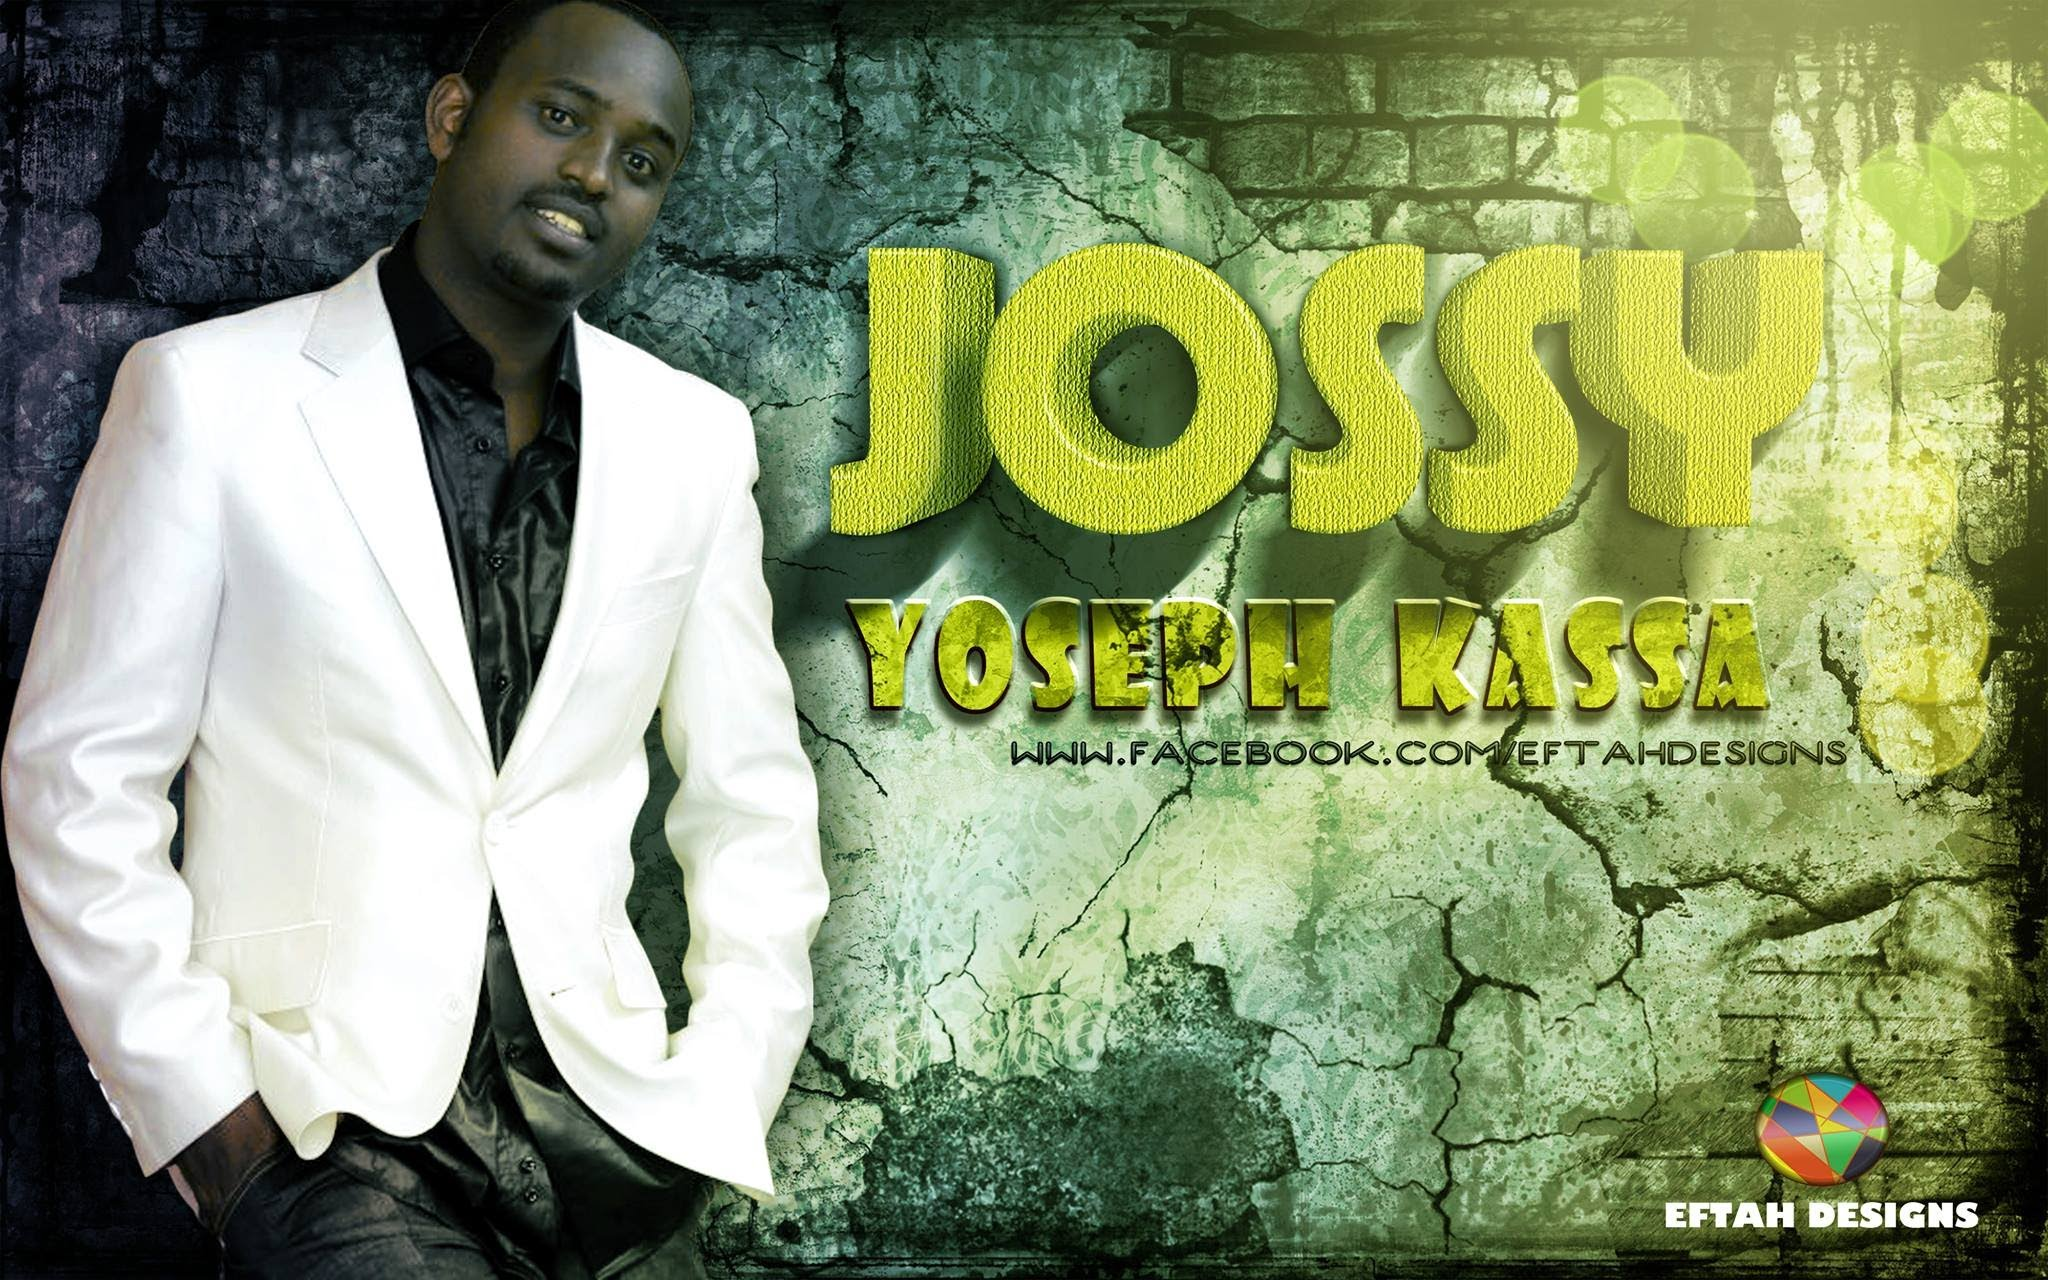 Yoseph kassa new song 2013